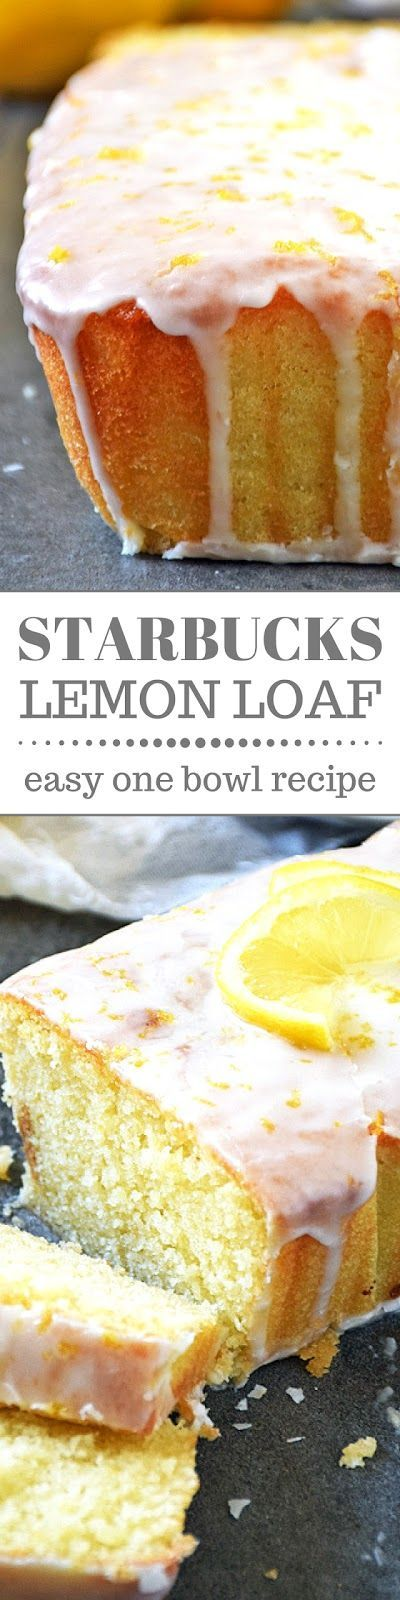 Now you can enjoy the deliciously tangy Starbucks Lemon Loaf without even leaving the house and you'll save money too! How great is that?! This copycat recipe is pretty easy to make and bursting with tangy lemon flavor. A family favorite for sure!